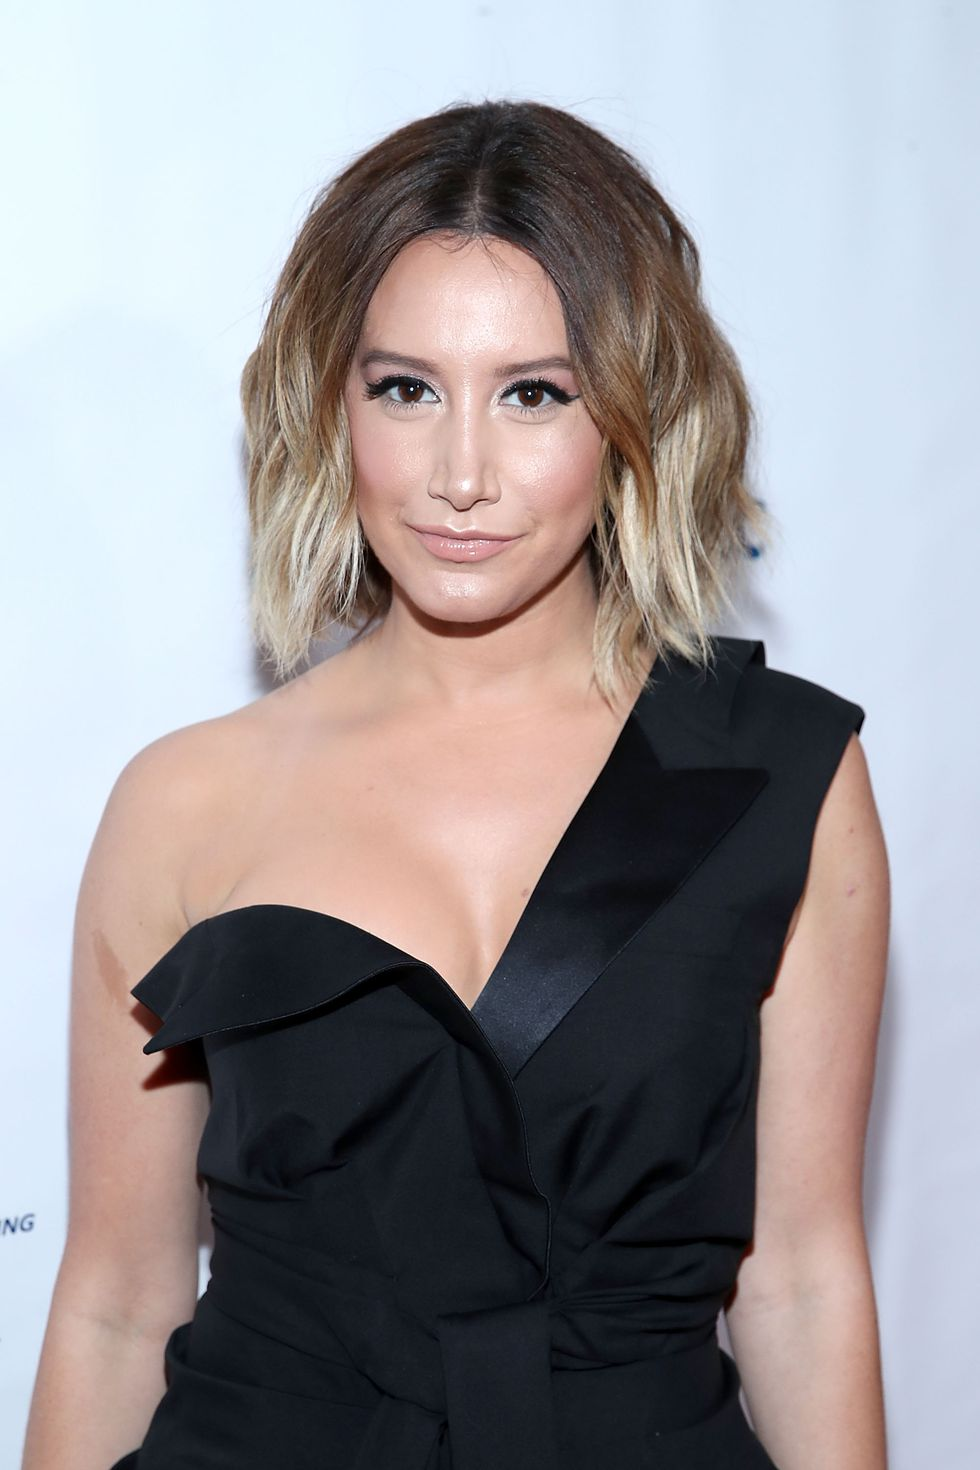 TREND: Sombré Hair   In the past, ombré hairstyles have been anything but subtle. However, Nash predicts that the rise in popularity for animal prints will have people looking for hairstyles that best complement their walk on the wild side. This style encompasses both medium and dark color hues, and as Ashley Tisdale updated her severe ombré, it will make your outfit and other features shine.